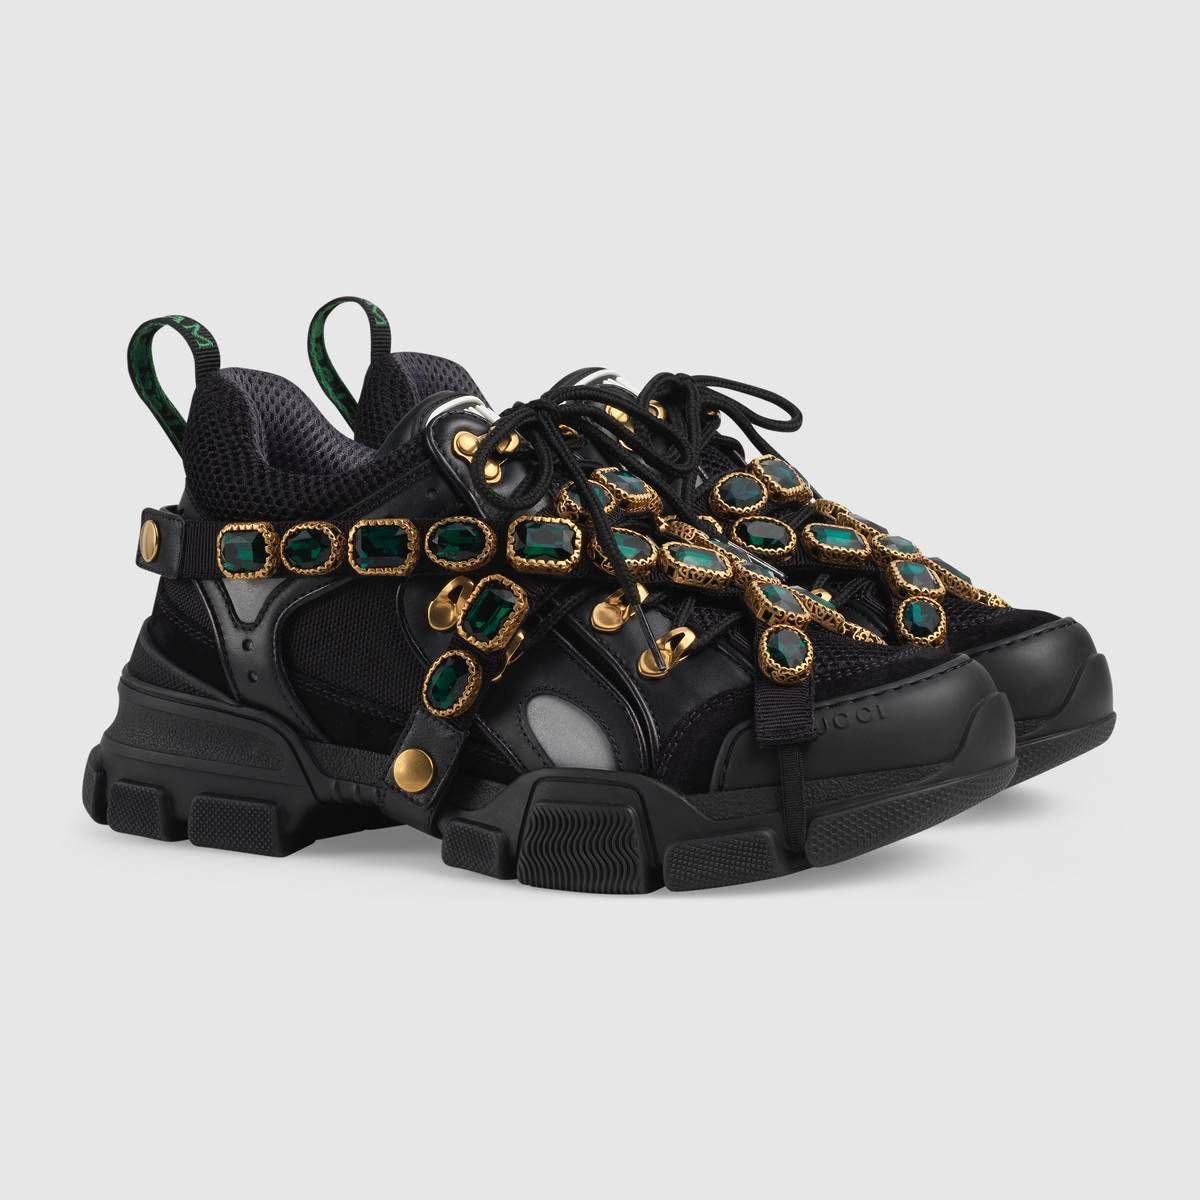 ad2a463ff Gucci Flashtrek sneaker with removable crystals Detail 2